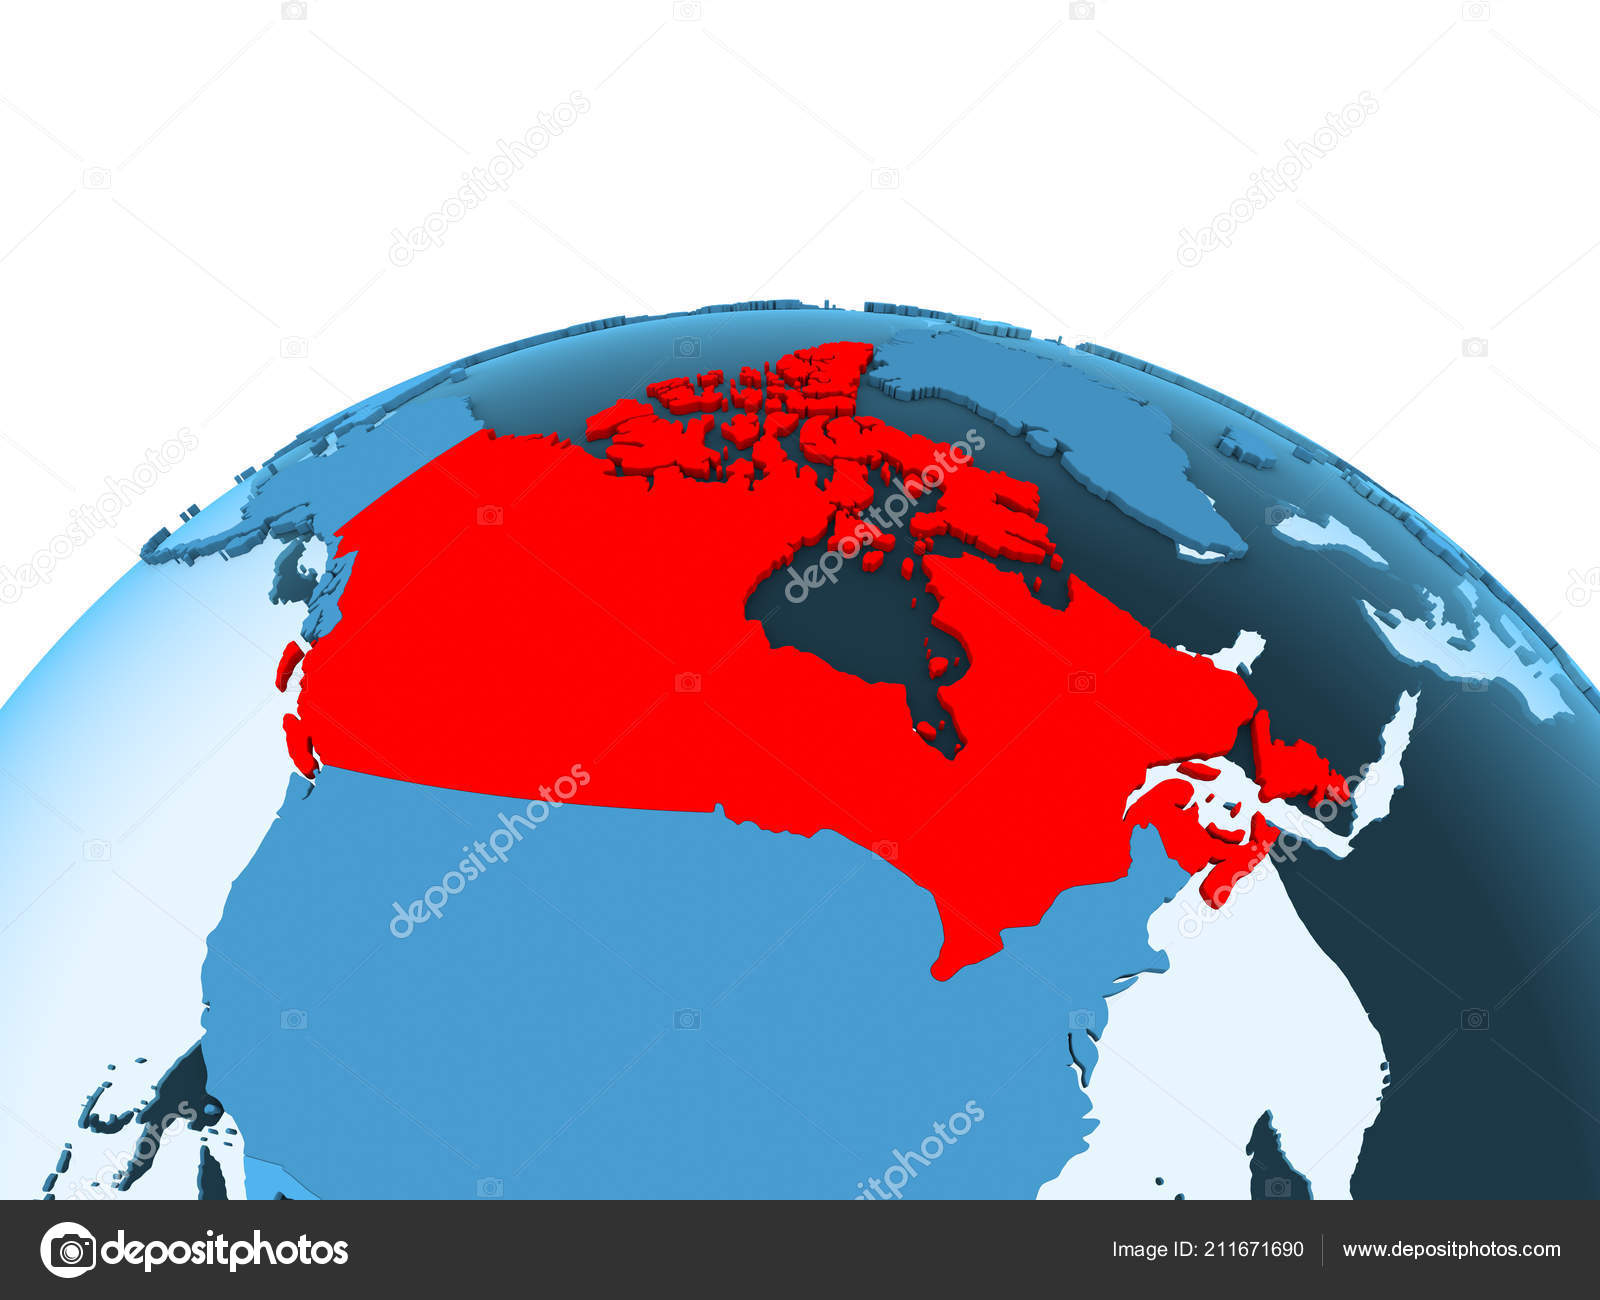 Map Of Canada On Globe.Map Canada Red Blue Political Globe Transparent Oceans Illustration